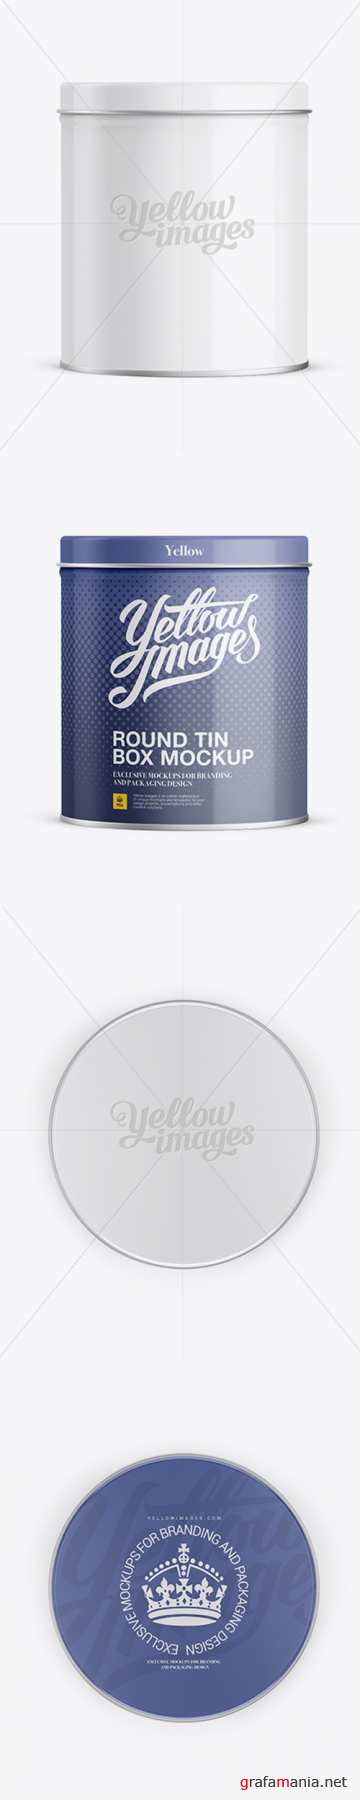 Small Round Tin Box Mockup 11830 TIF